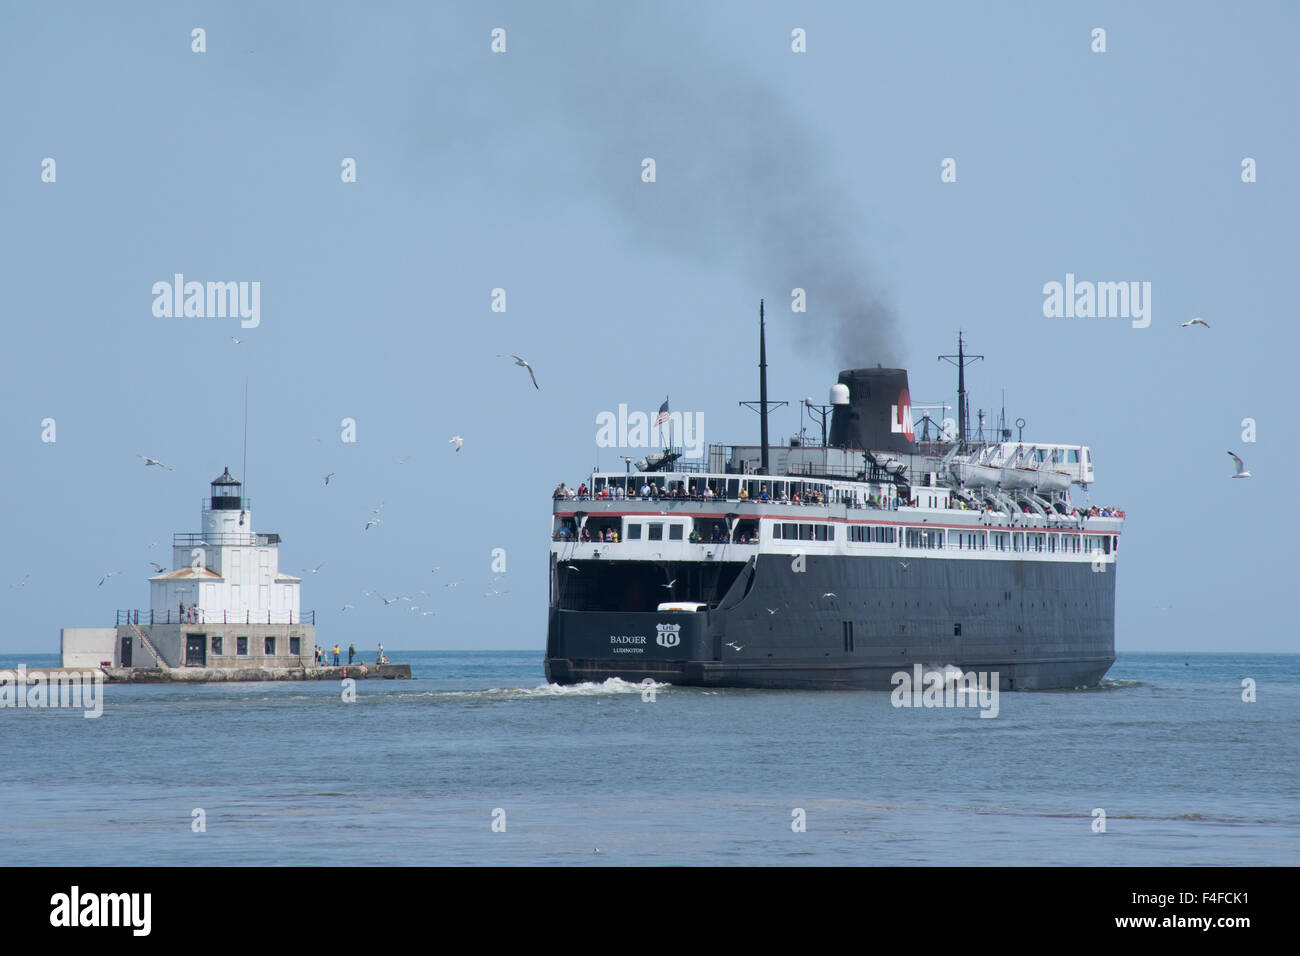 Wisconsin, Lake Michigan, Manitowoc. S.S. Badger, only coal-fired passenger steamship in the US, circa 1952. Manitowoc - Stock Image